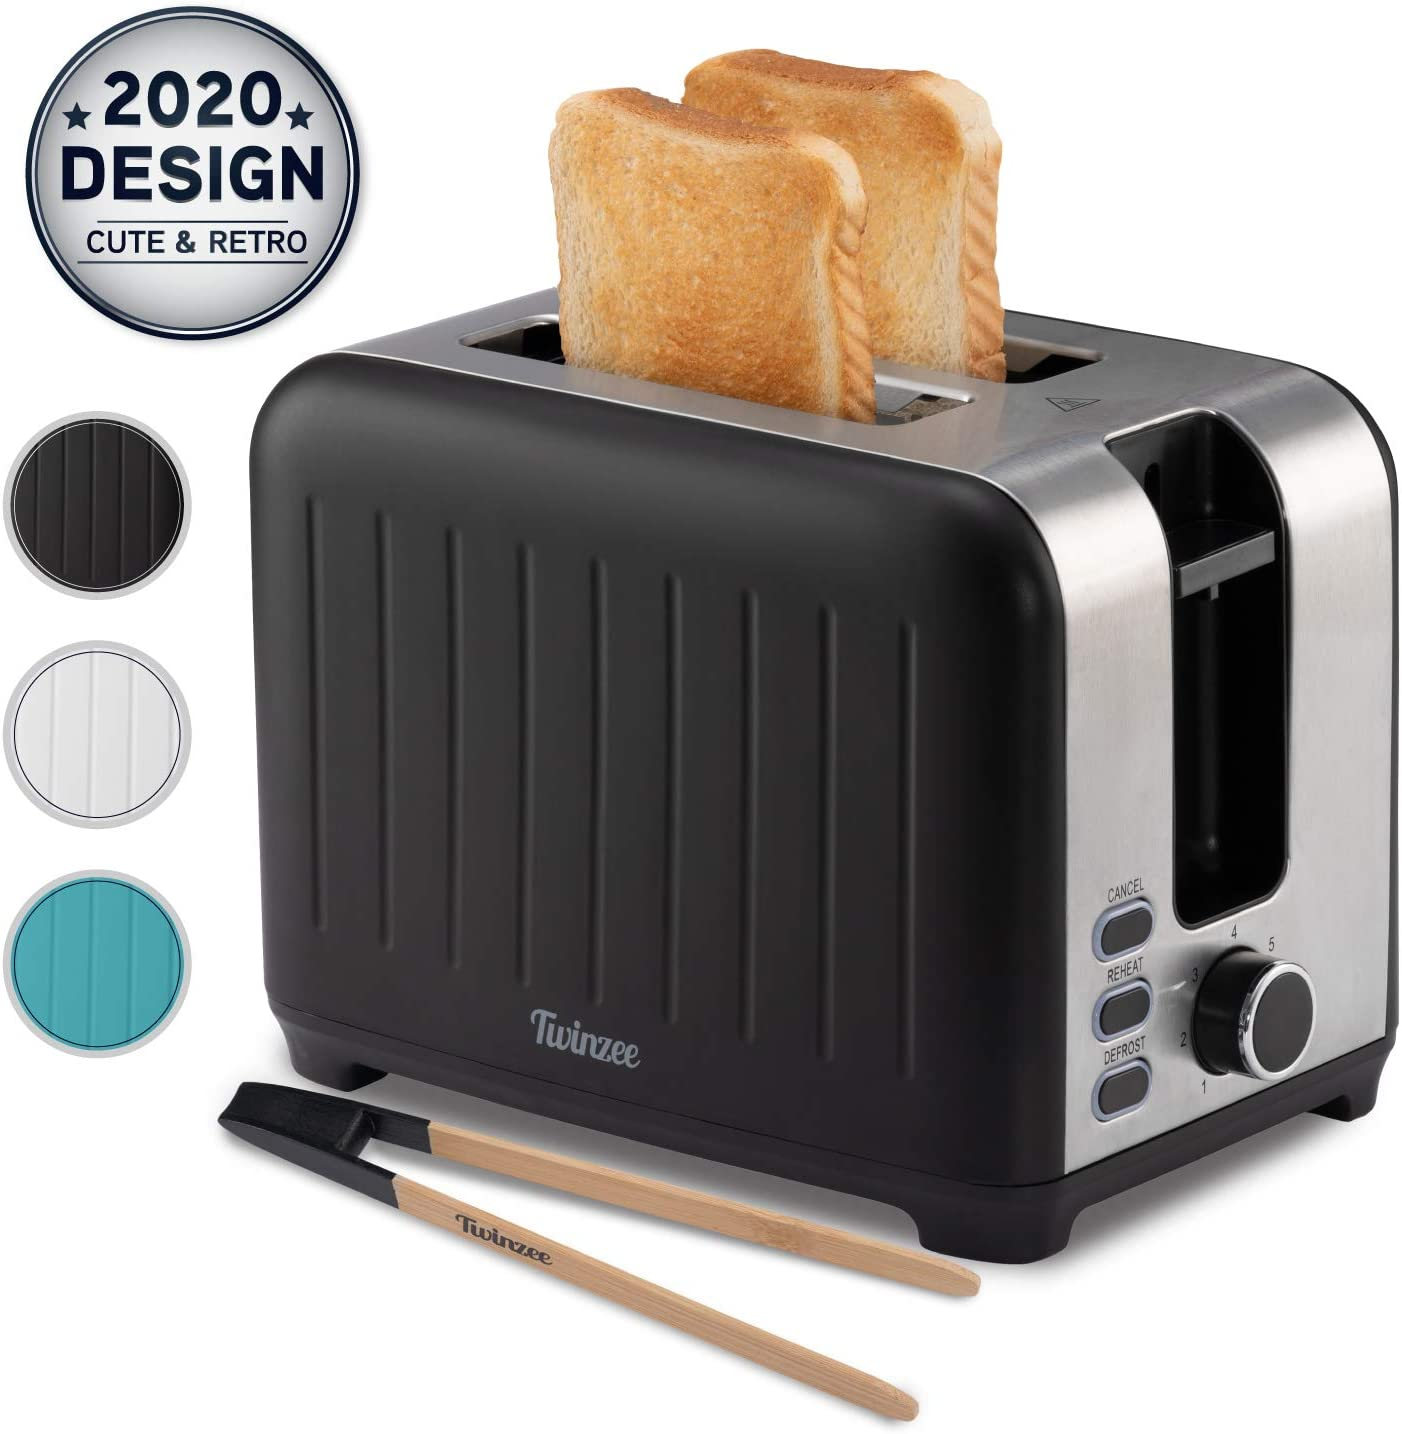 Twinzee Wide Slot Toaster 2 Slice - 3 in 1 Retro Toaster, Matte Black and Stainless Steel - Small Toaster with Free Bamboo Tongs Clips and Crumb Tray - 7 Toasting Settings, 850W Toasters - Vintage Toster